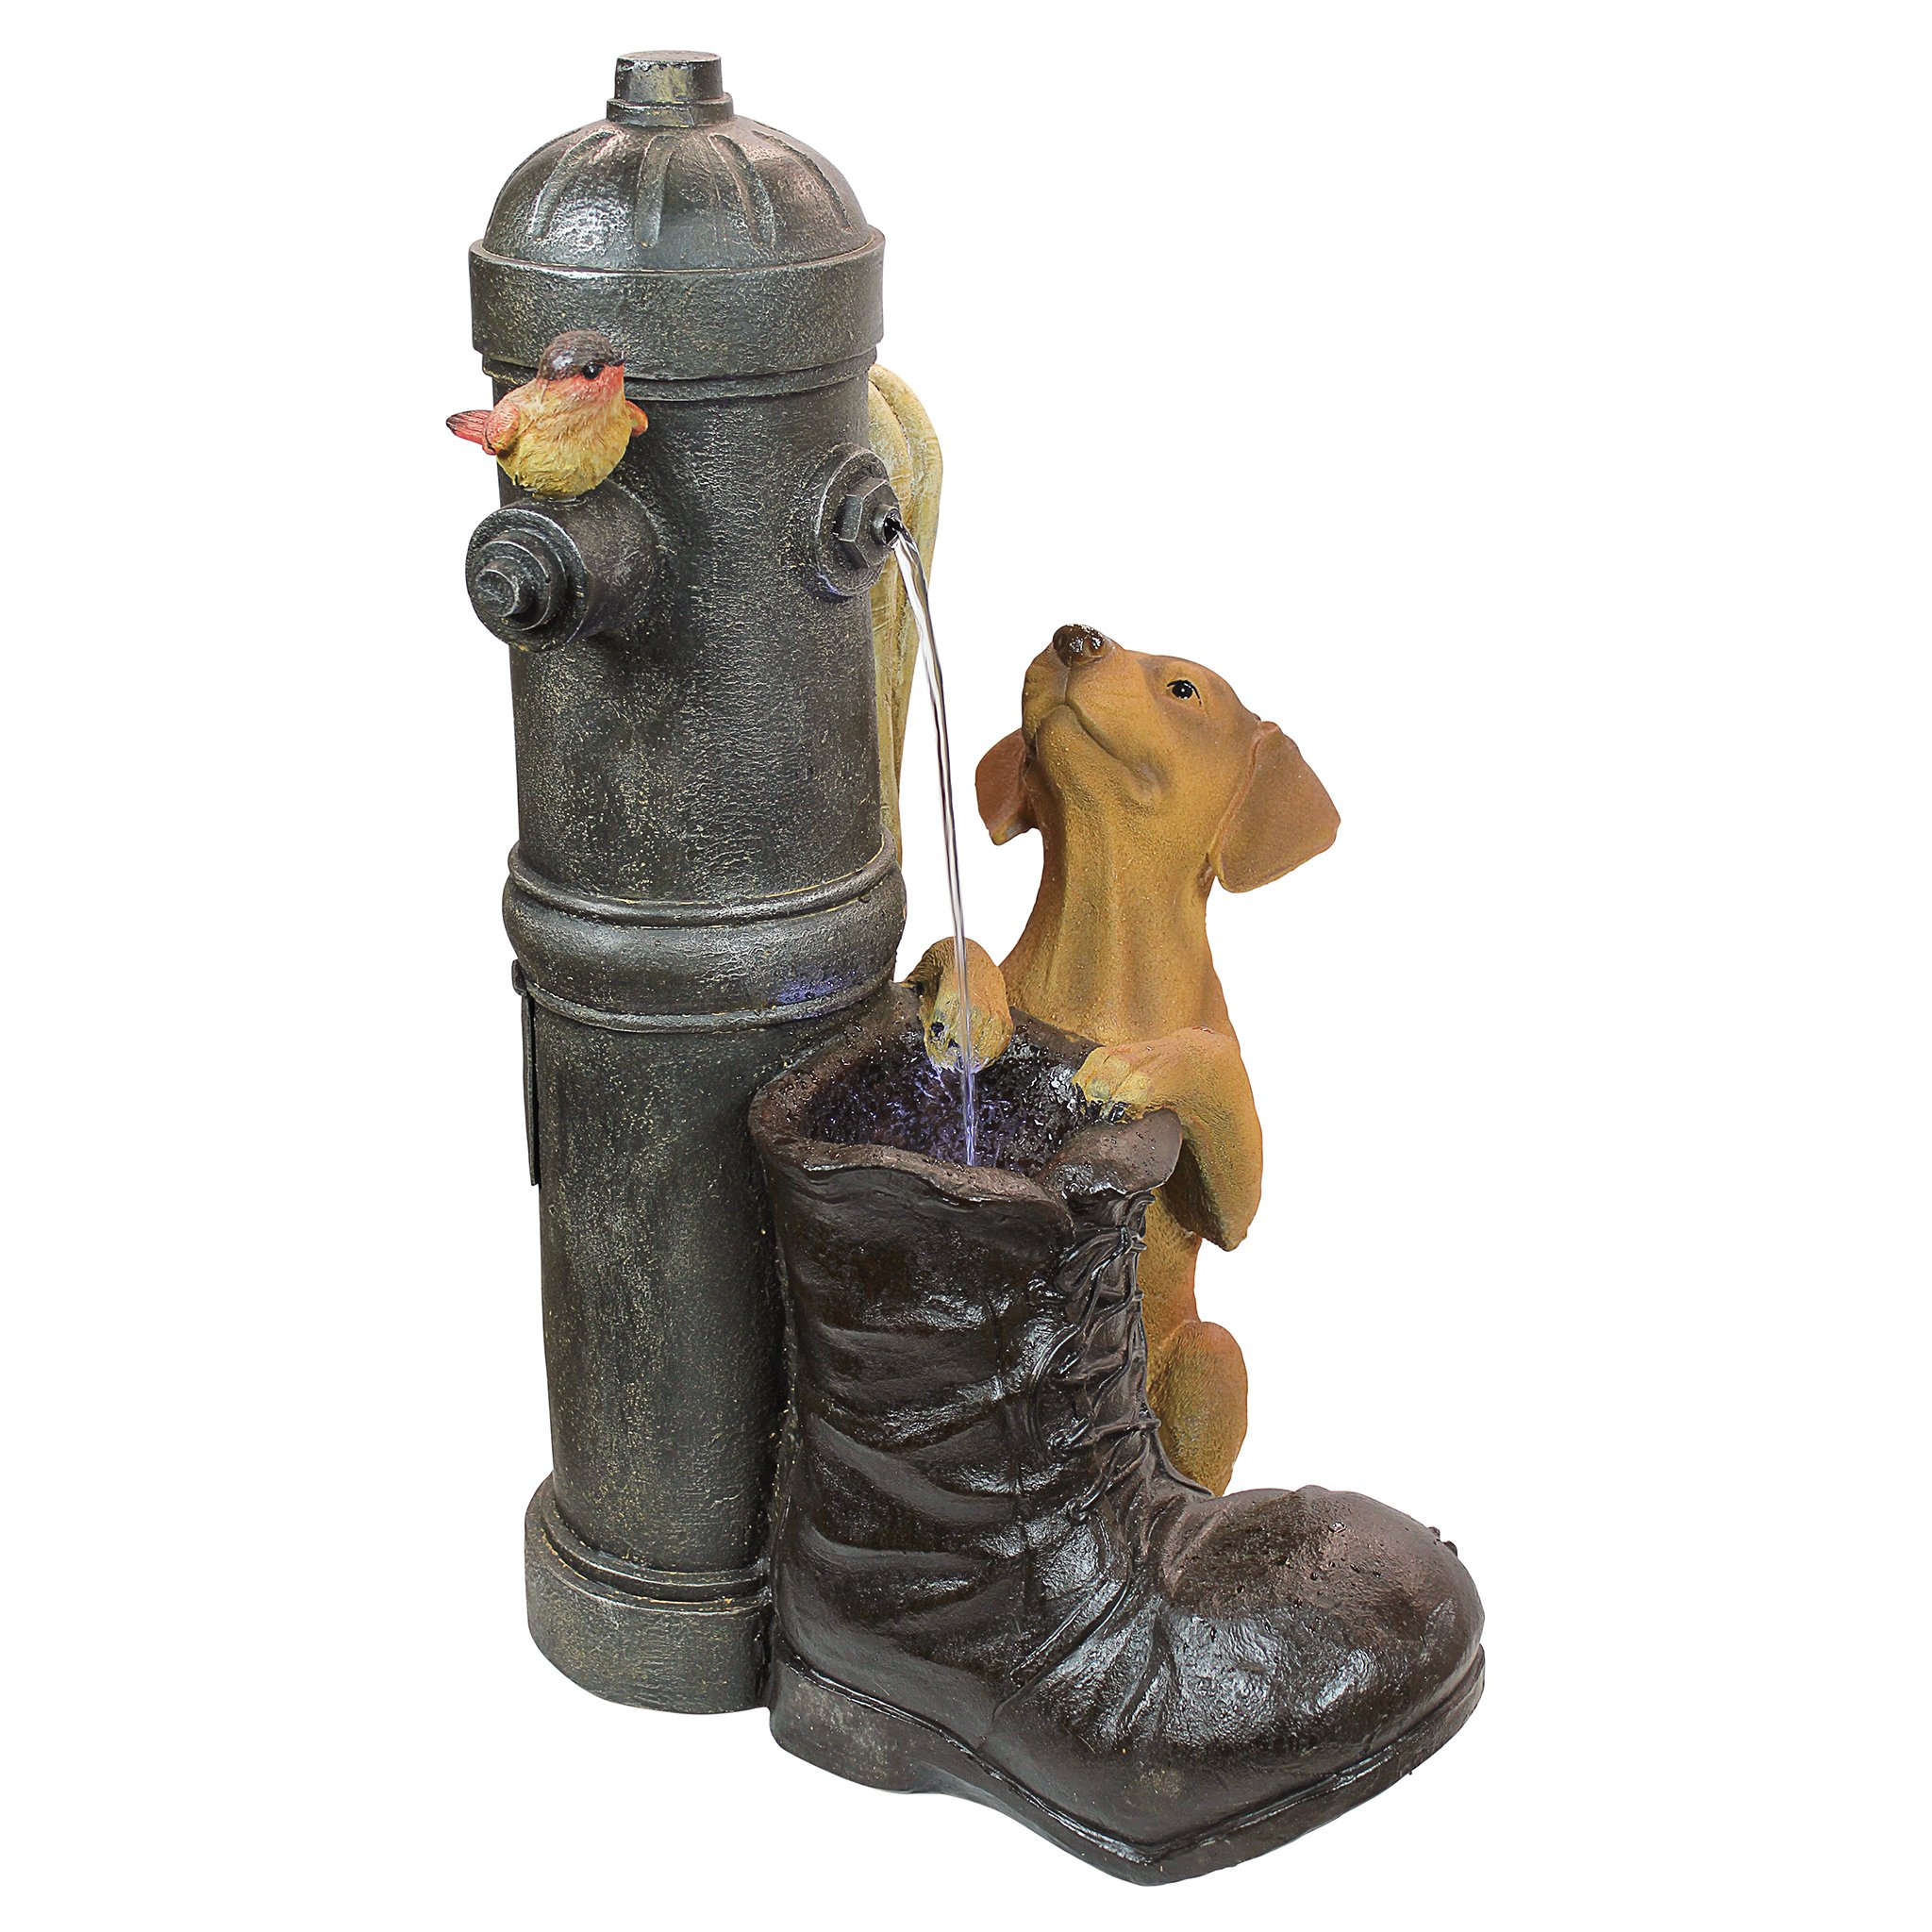 Design Toscano Fire Hydrant Pooch Sculptural Fountain by Design Toscano